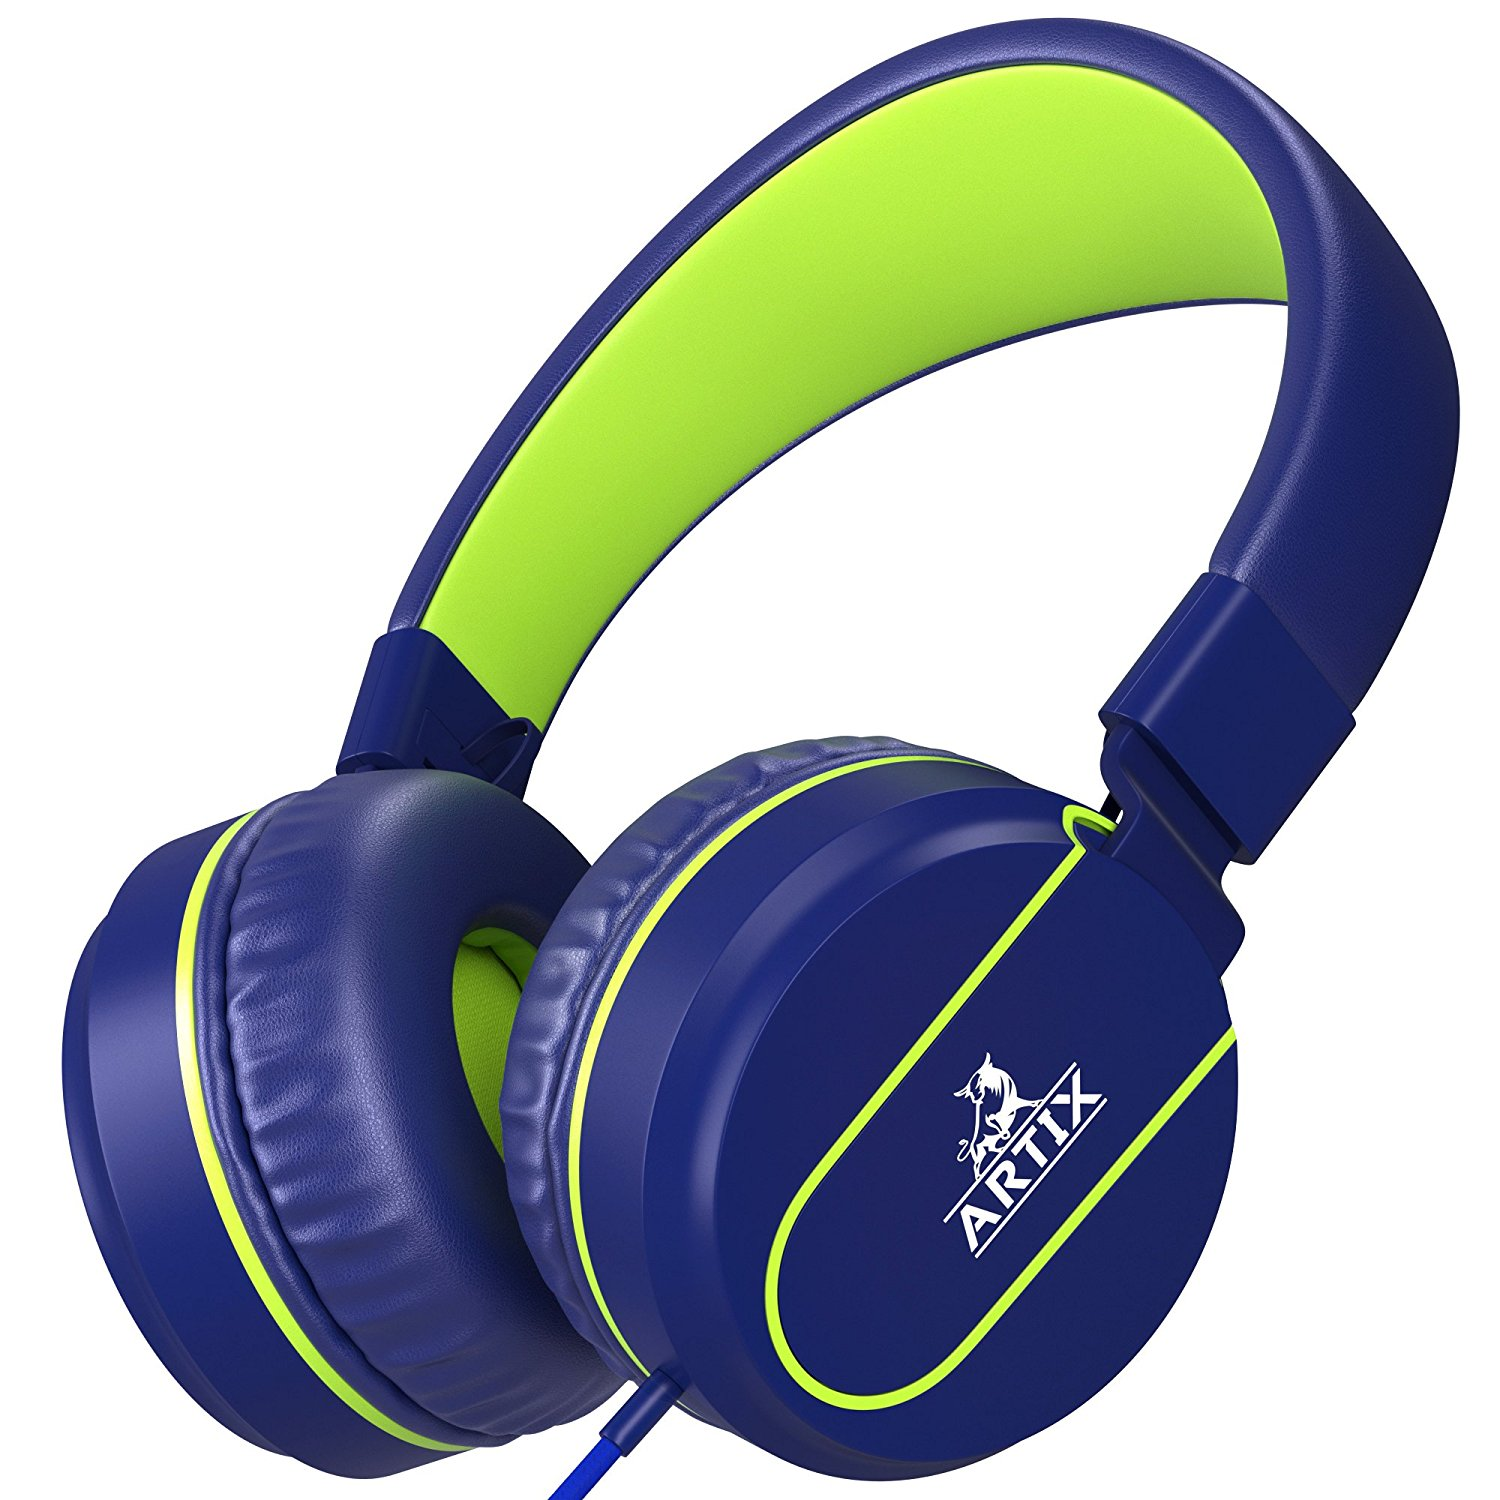 ARTIX Headphones with Microphone for Travel